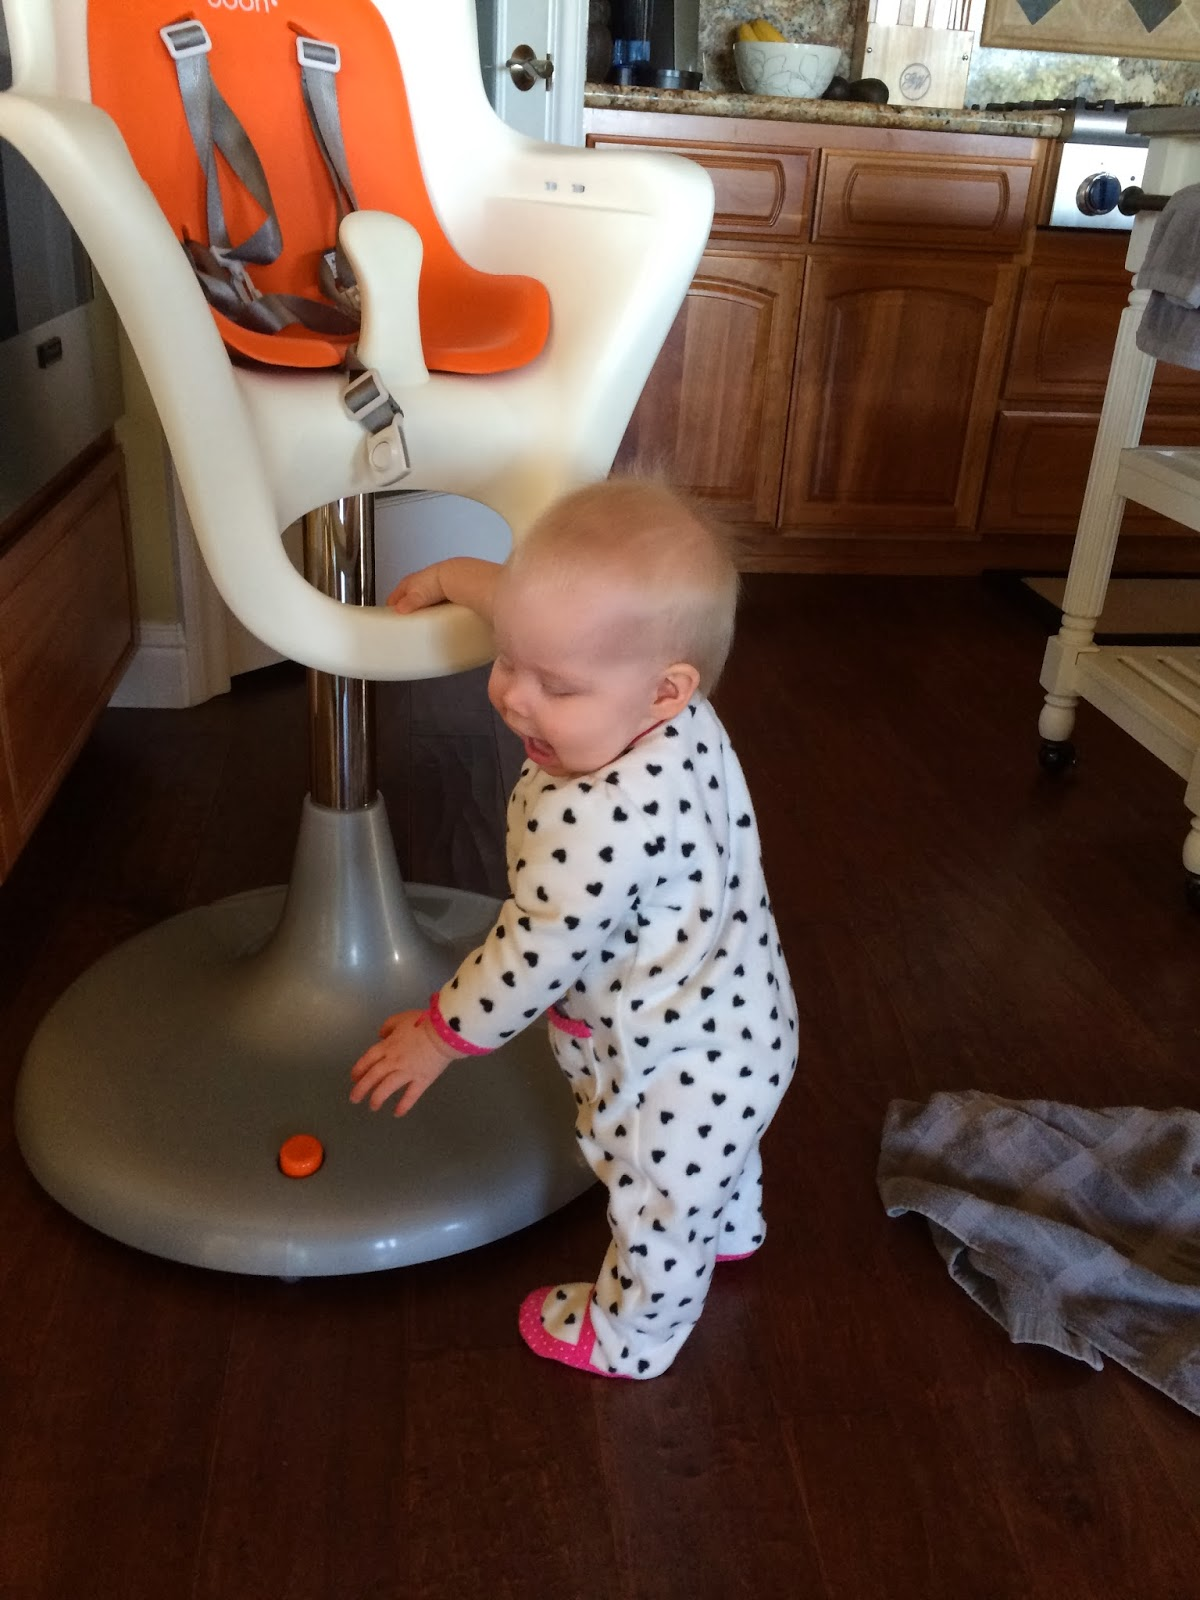 The Boon High Chair: My Review